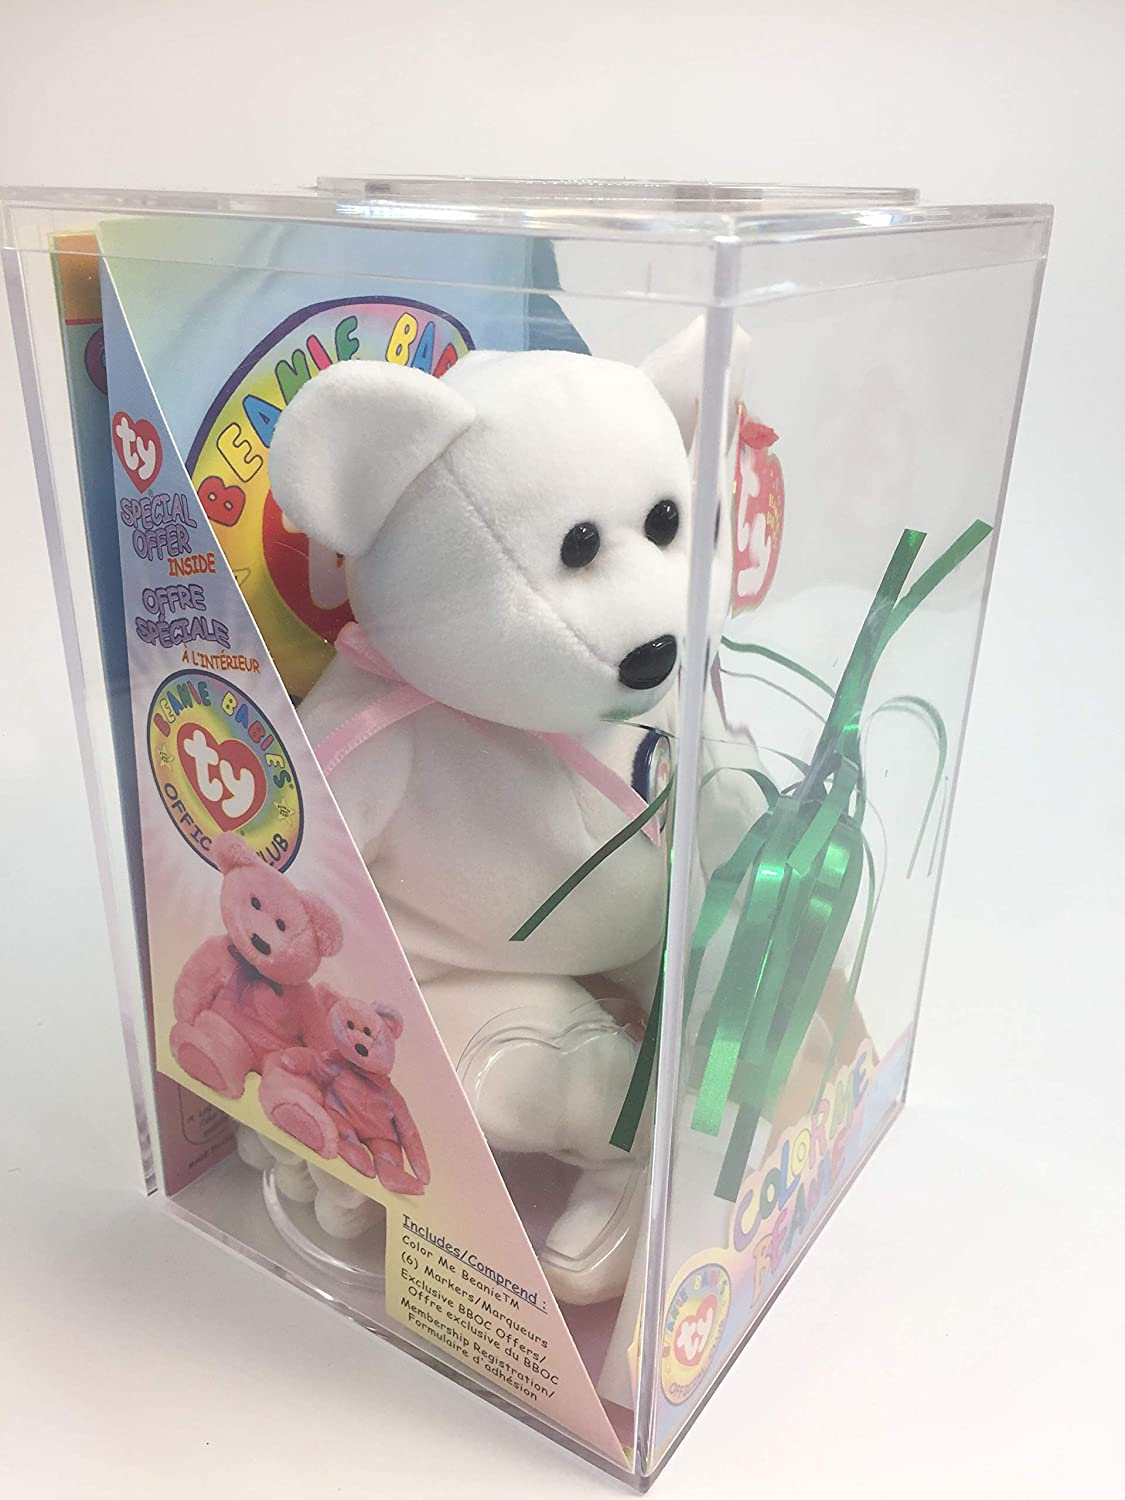 e7c77b82ee1 Amazon.com  TY Beanie Baby - COLOR ME BEANIE   TEDDY BEAR   (Complete Kit)  (original color me beanie)  Toys   Games